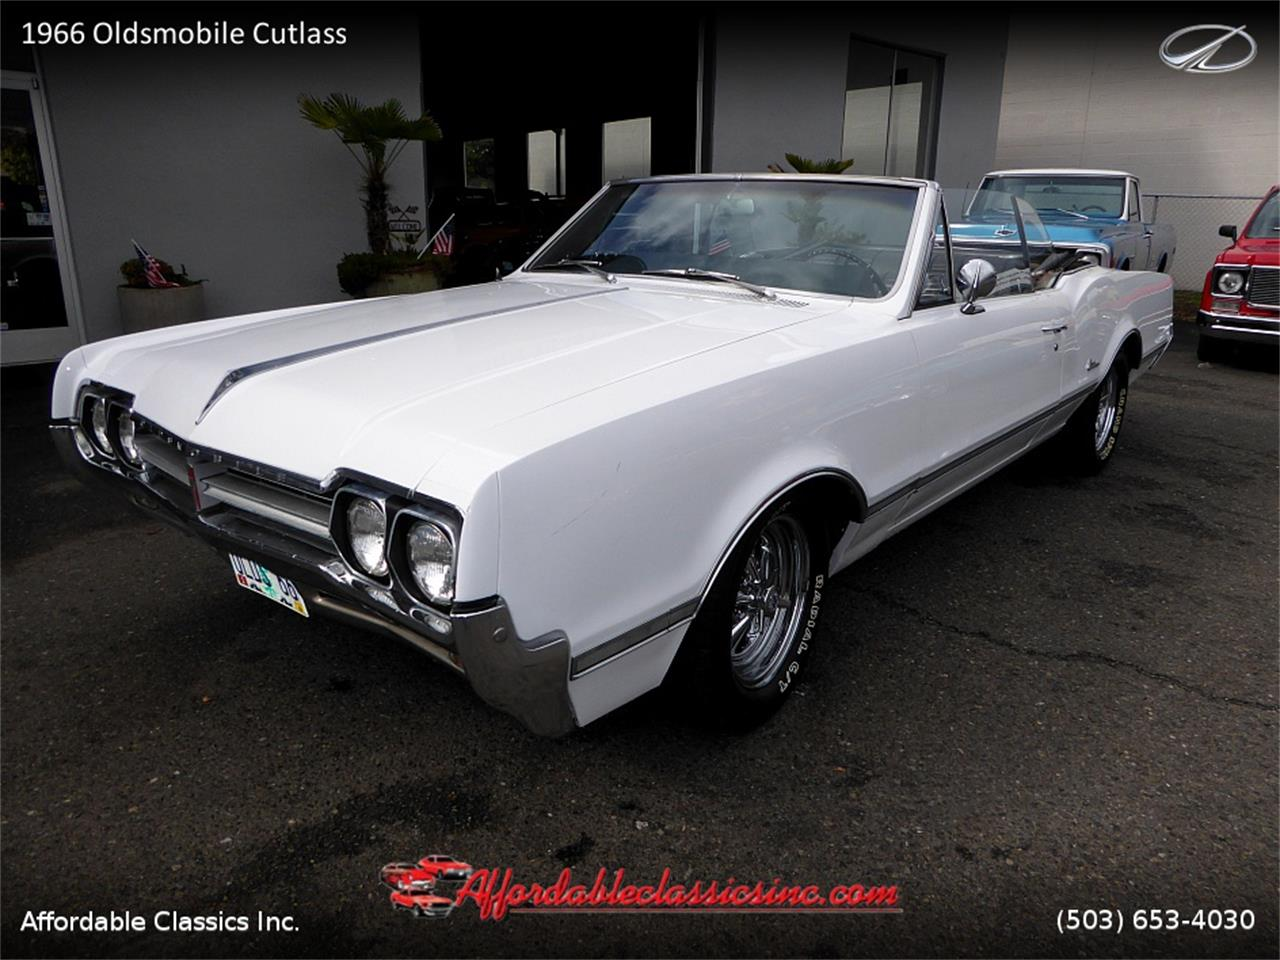 Large Picture of Classic '66 Oldsmobile Cutlass located in Oregon - $25,500.00 - MN4C